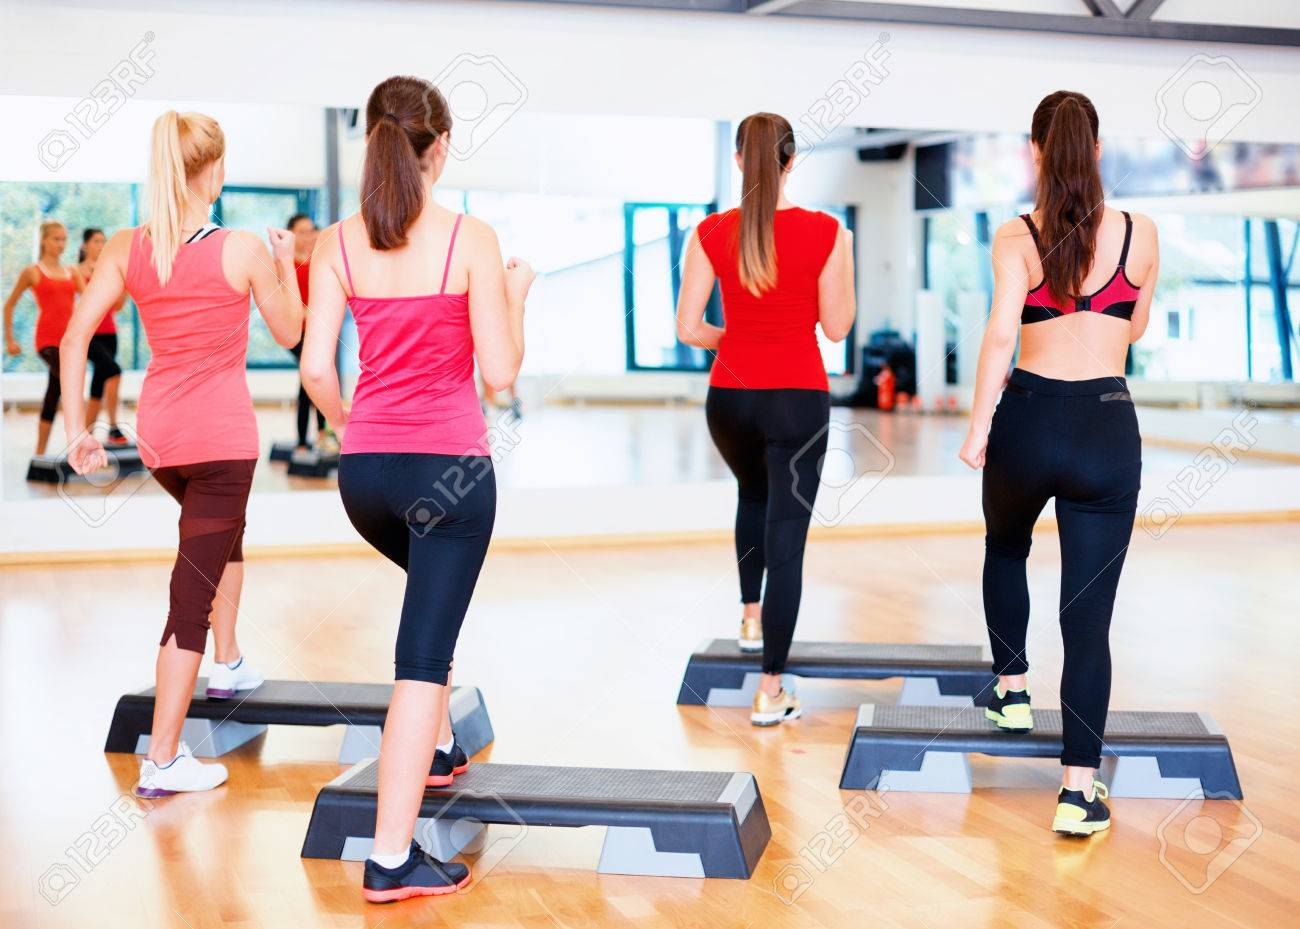 Fitness Sport Training Gym And Lifestyle Concept Group Of Stock Photo Picture And Royalty Free Image Image 28139964